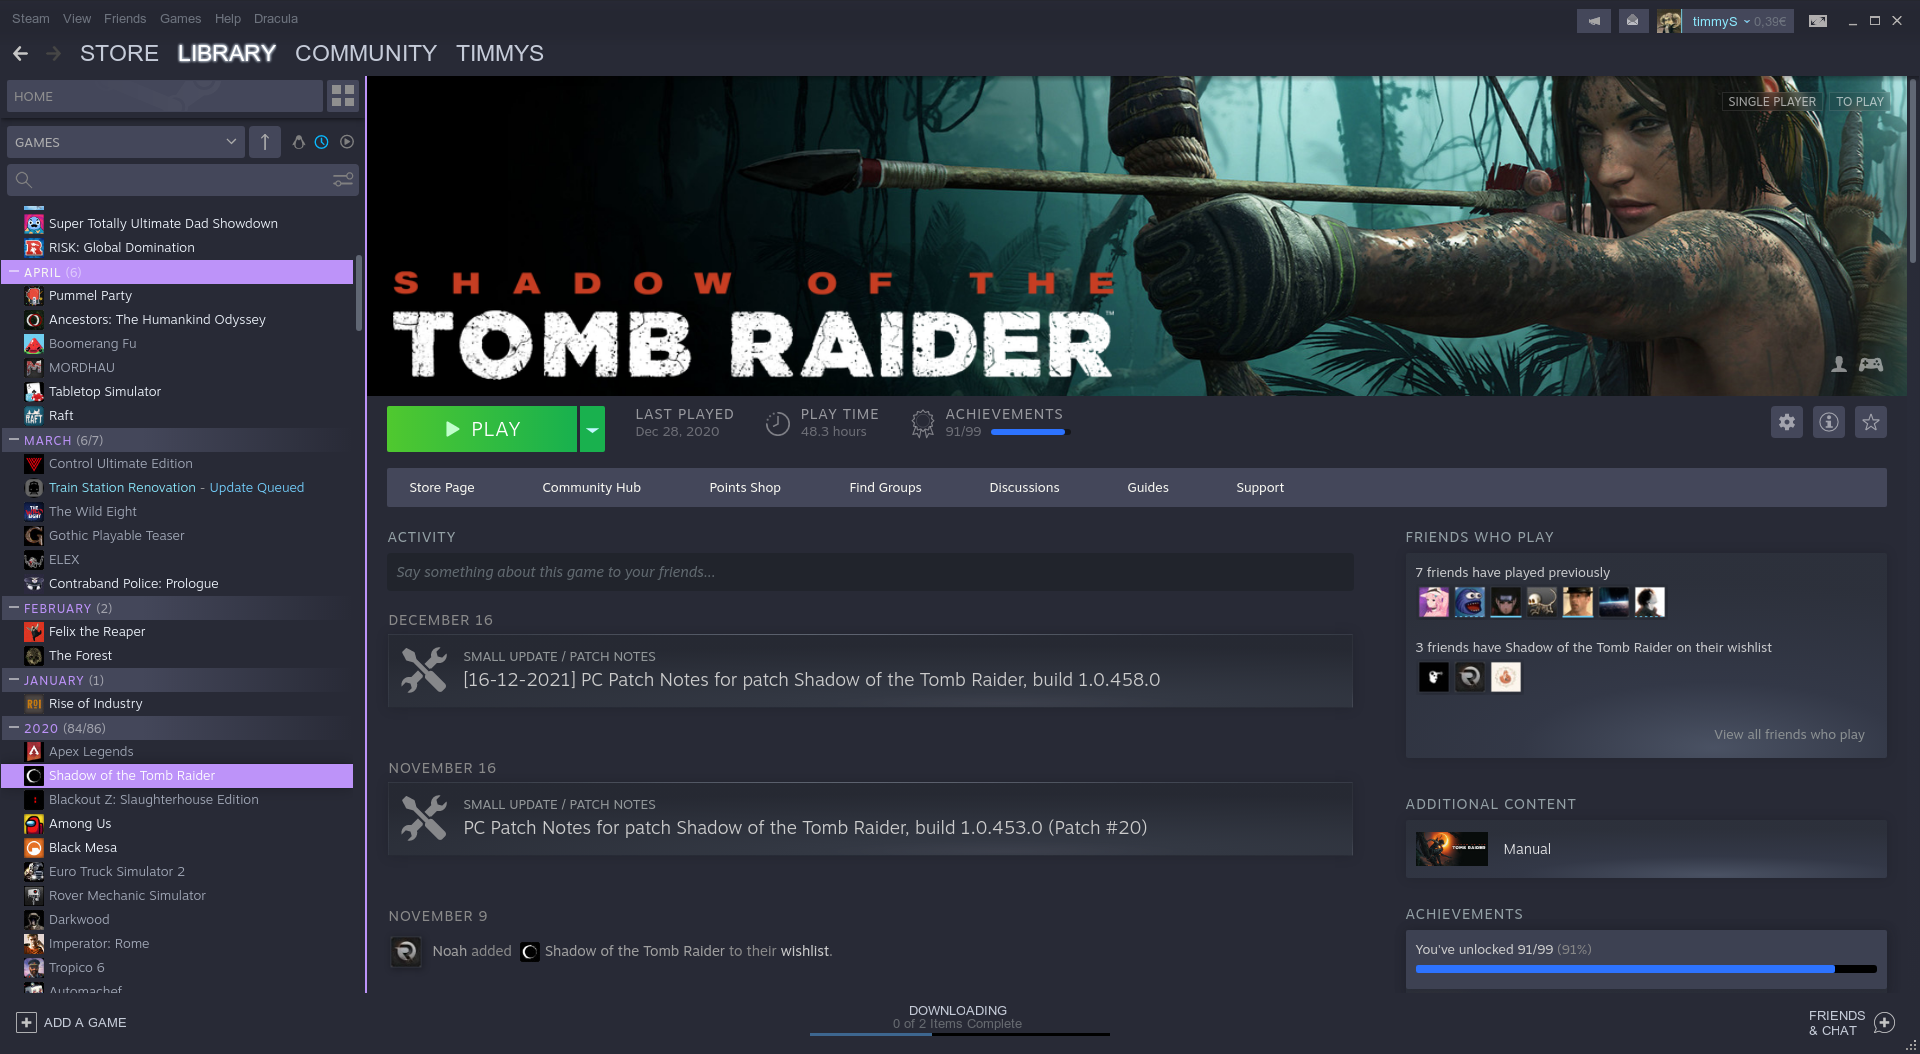 Steam Theme Preview